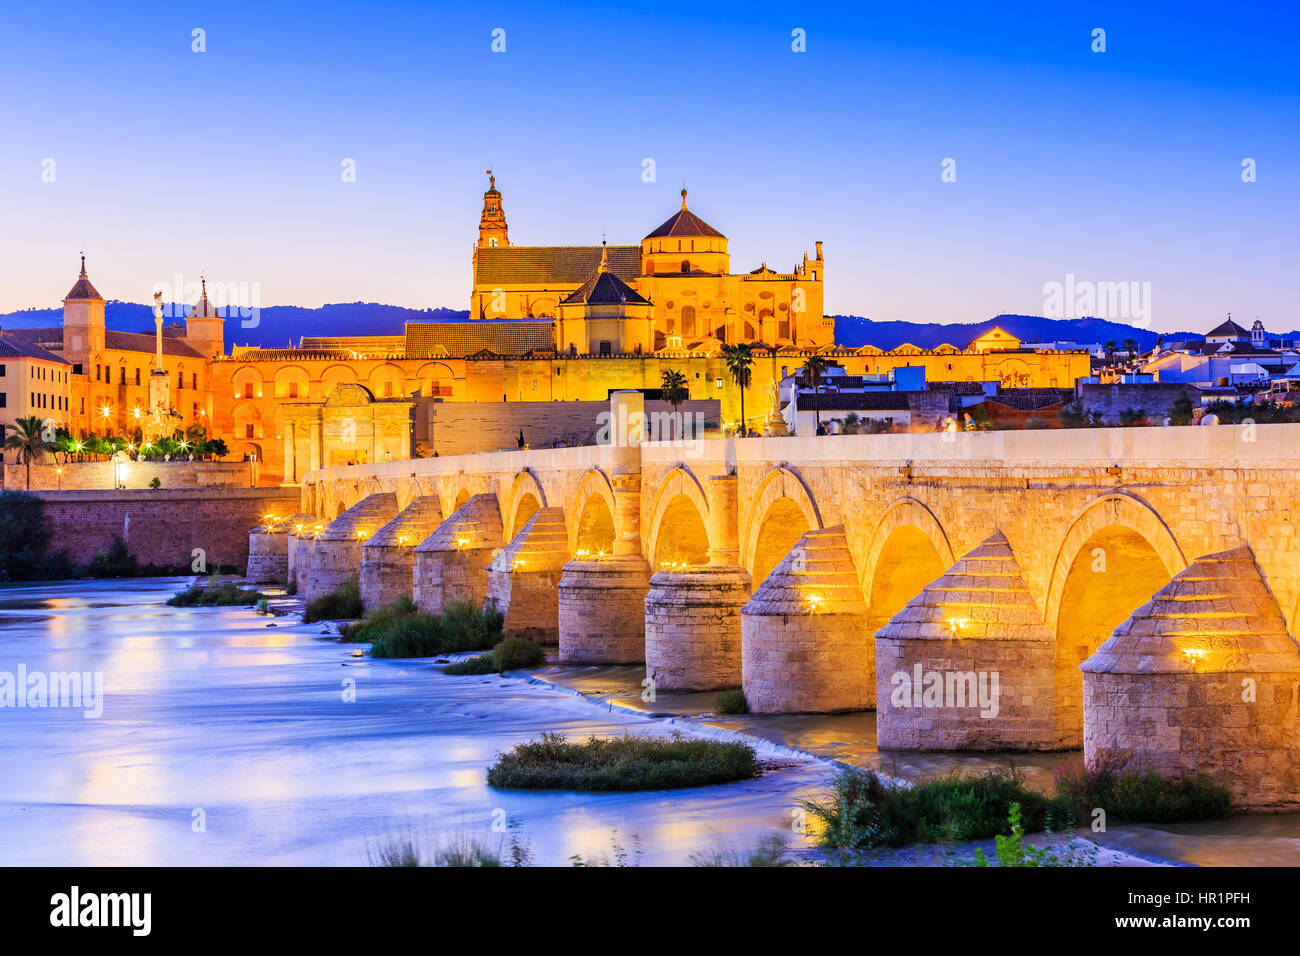 Cordoba, Spain, Andalusia. Roman Bridge on Guadalquivir river and The Great Mosque (Mezquita Cathedral) - Stock Image